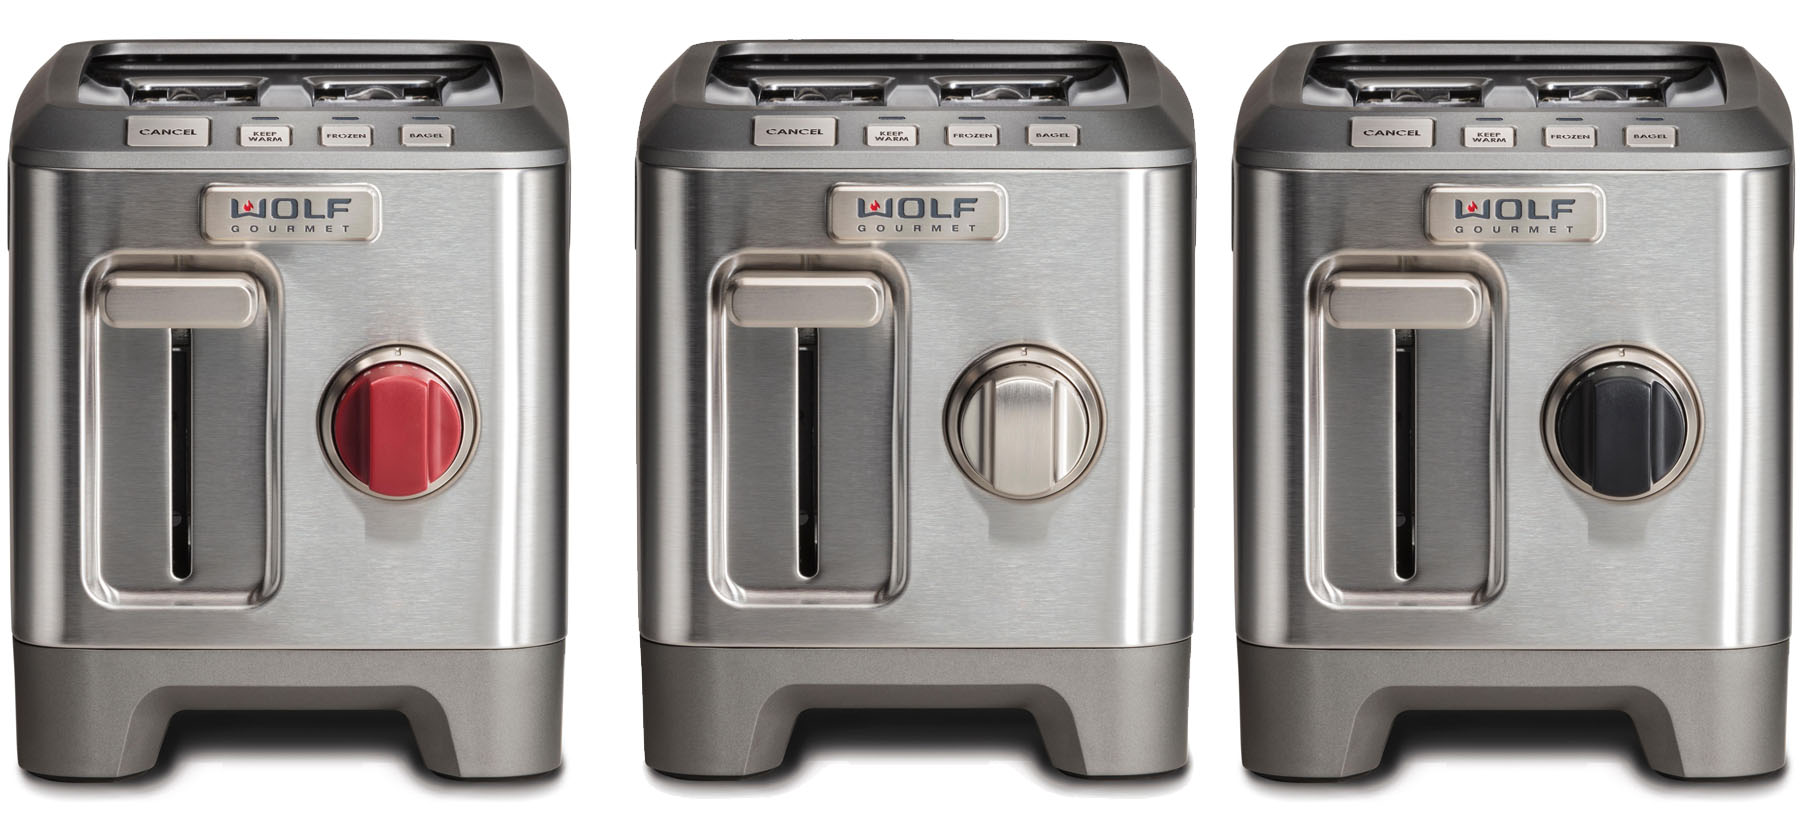 Wolf 2 slice toasters side by side red, siver and black knobs